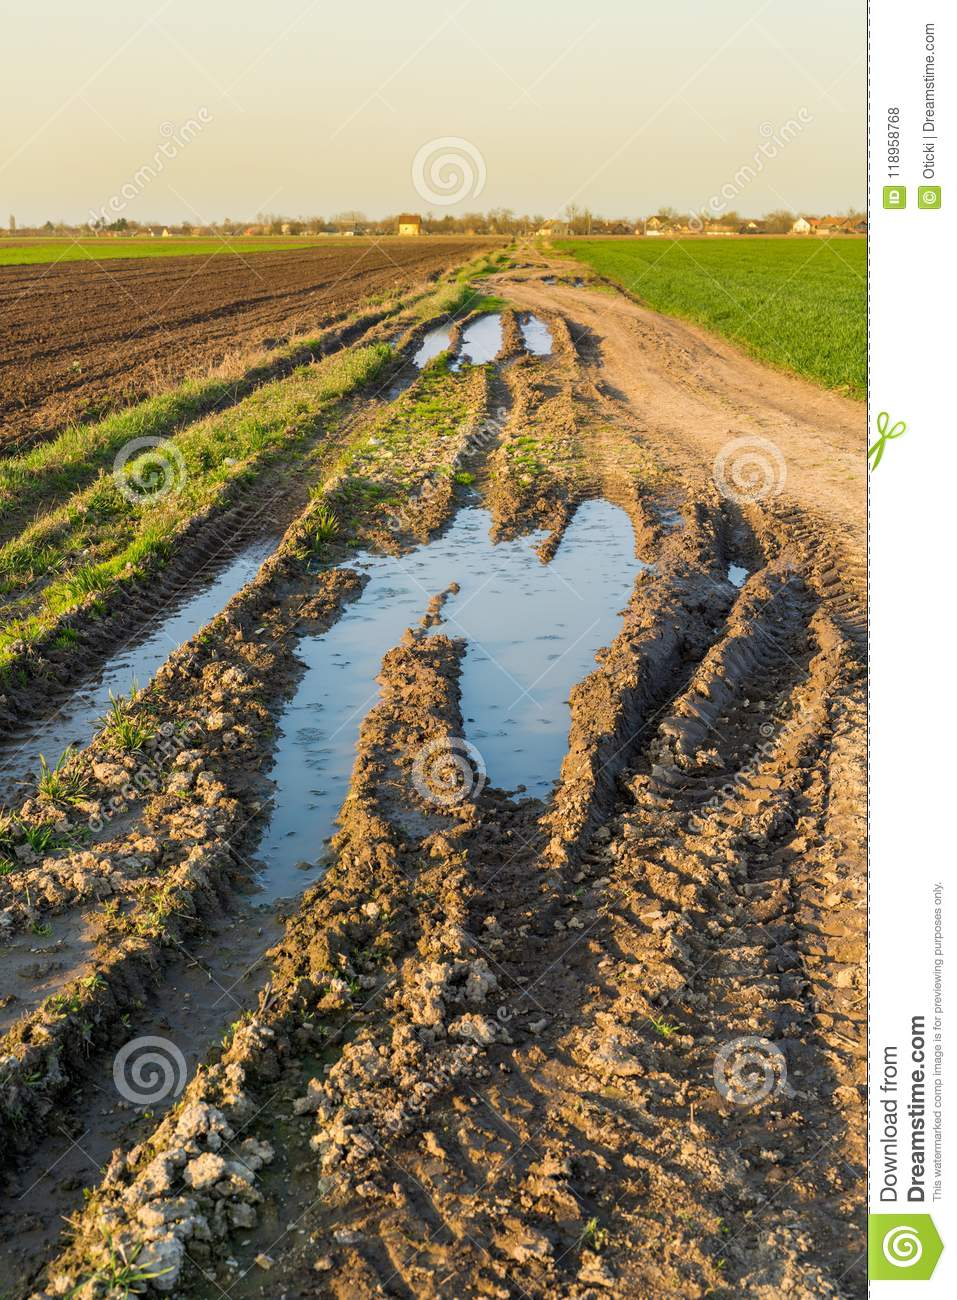 Agricultural Landsaple, Arable Crop Field Stock Photo